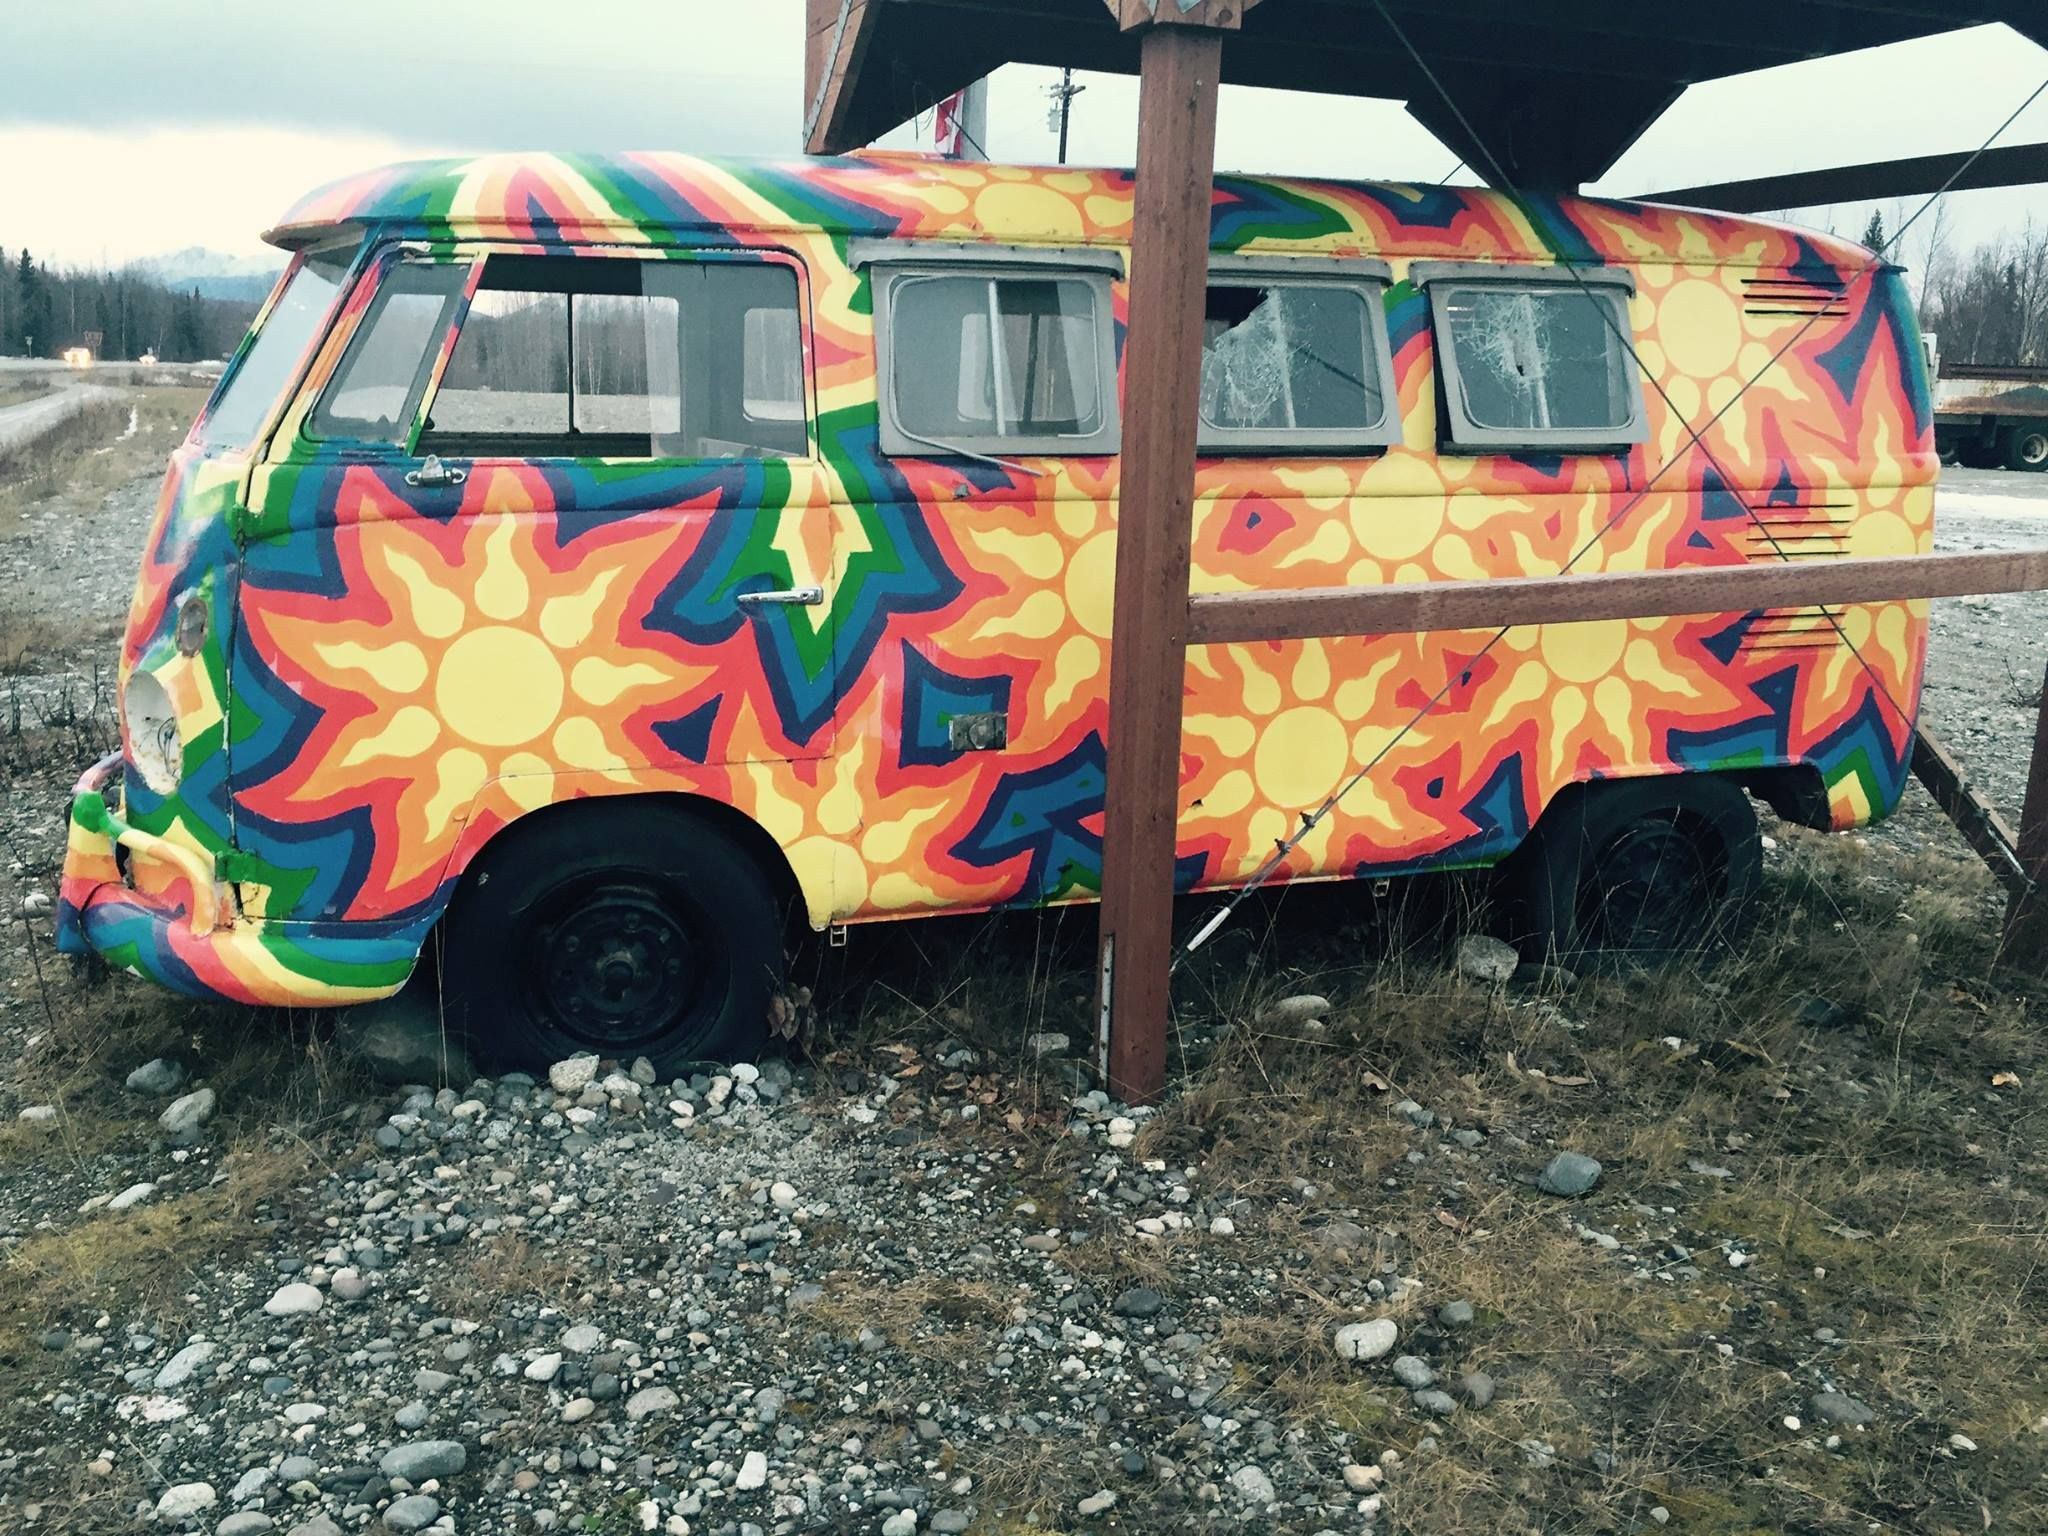 Vw Bus Junkies Classic Vw Bus Owners And Fans Timeline Vw Bus Volkswagen Bus Car Painting